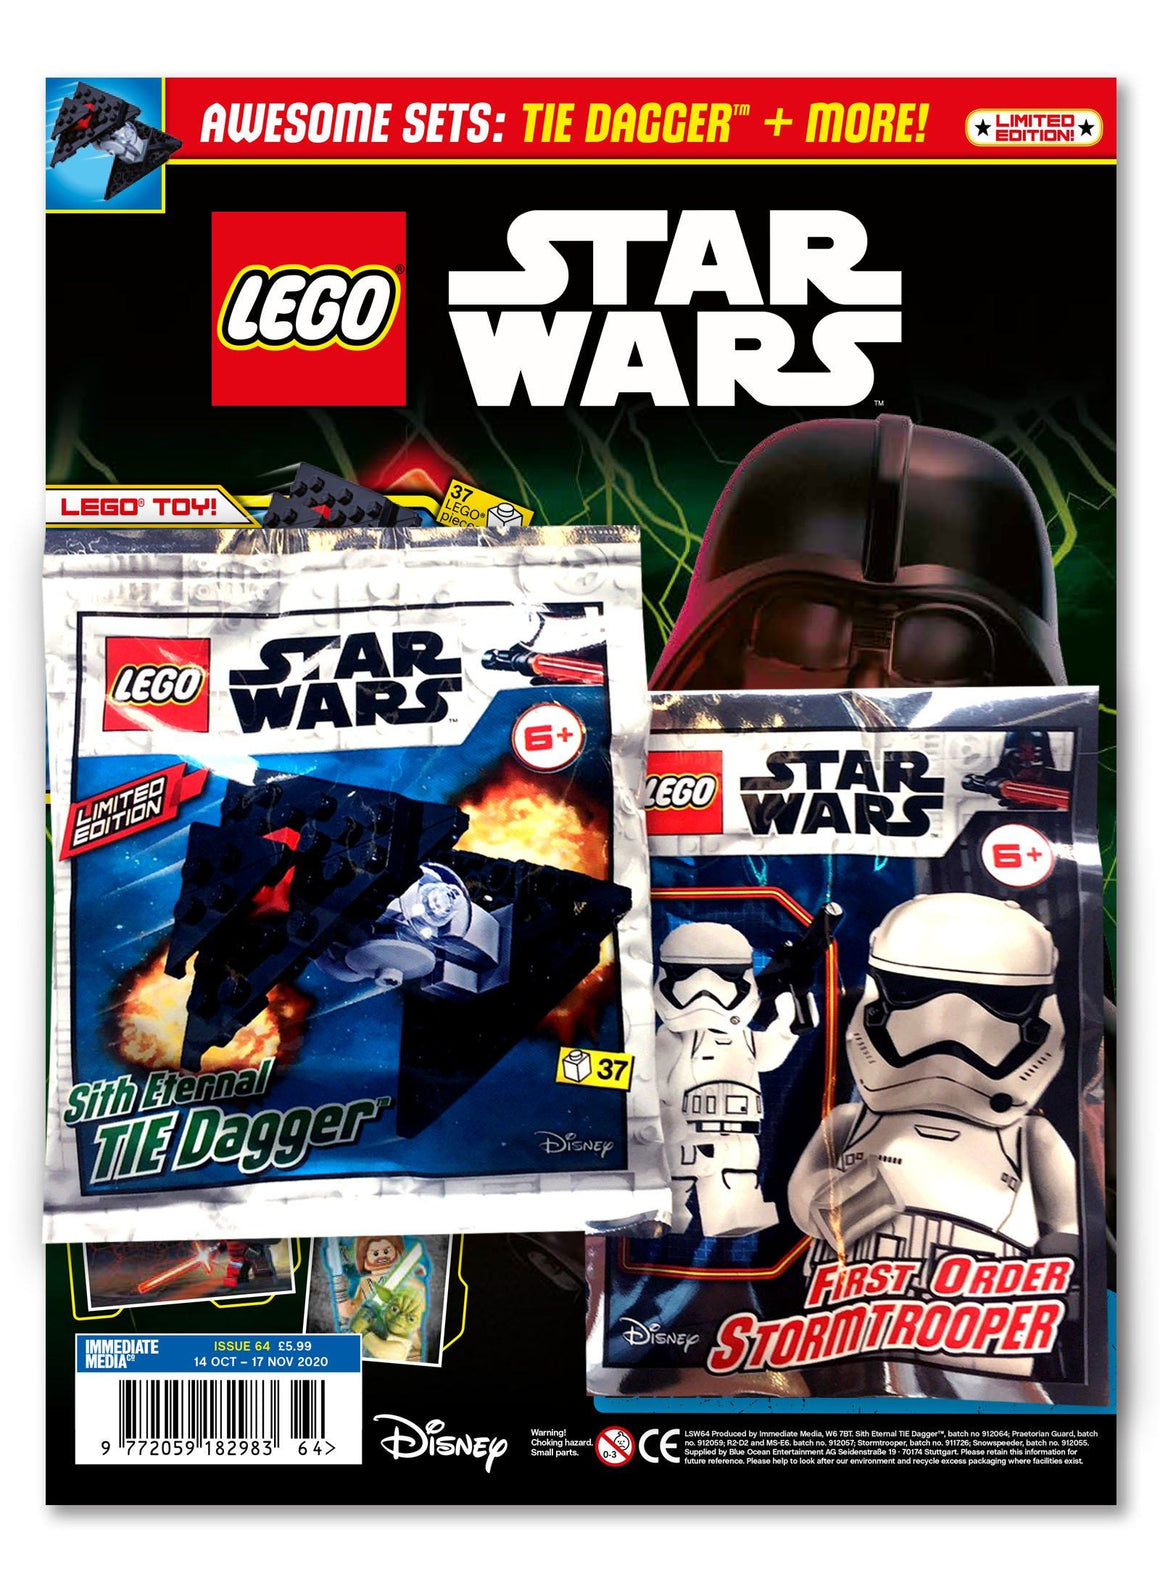 LEGO Star Wars Magazine Issue 64 - Gifted Magazine 5 Minute Fun Shop